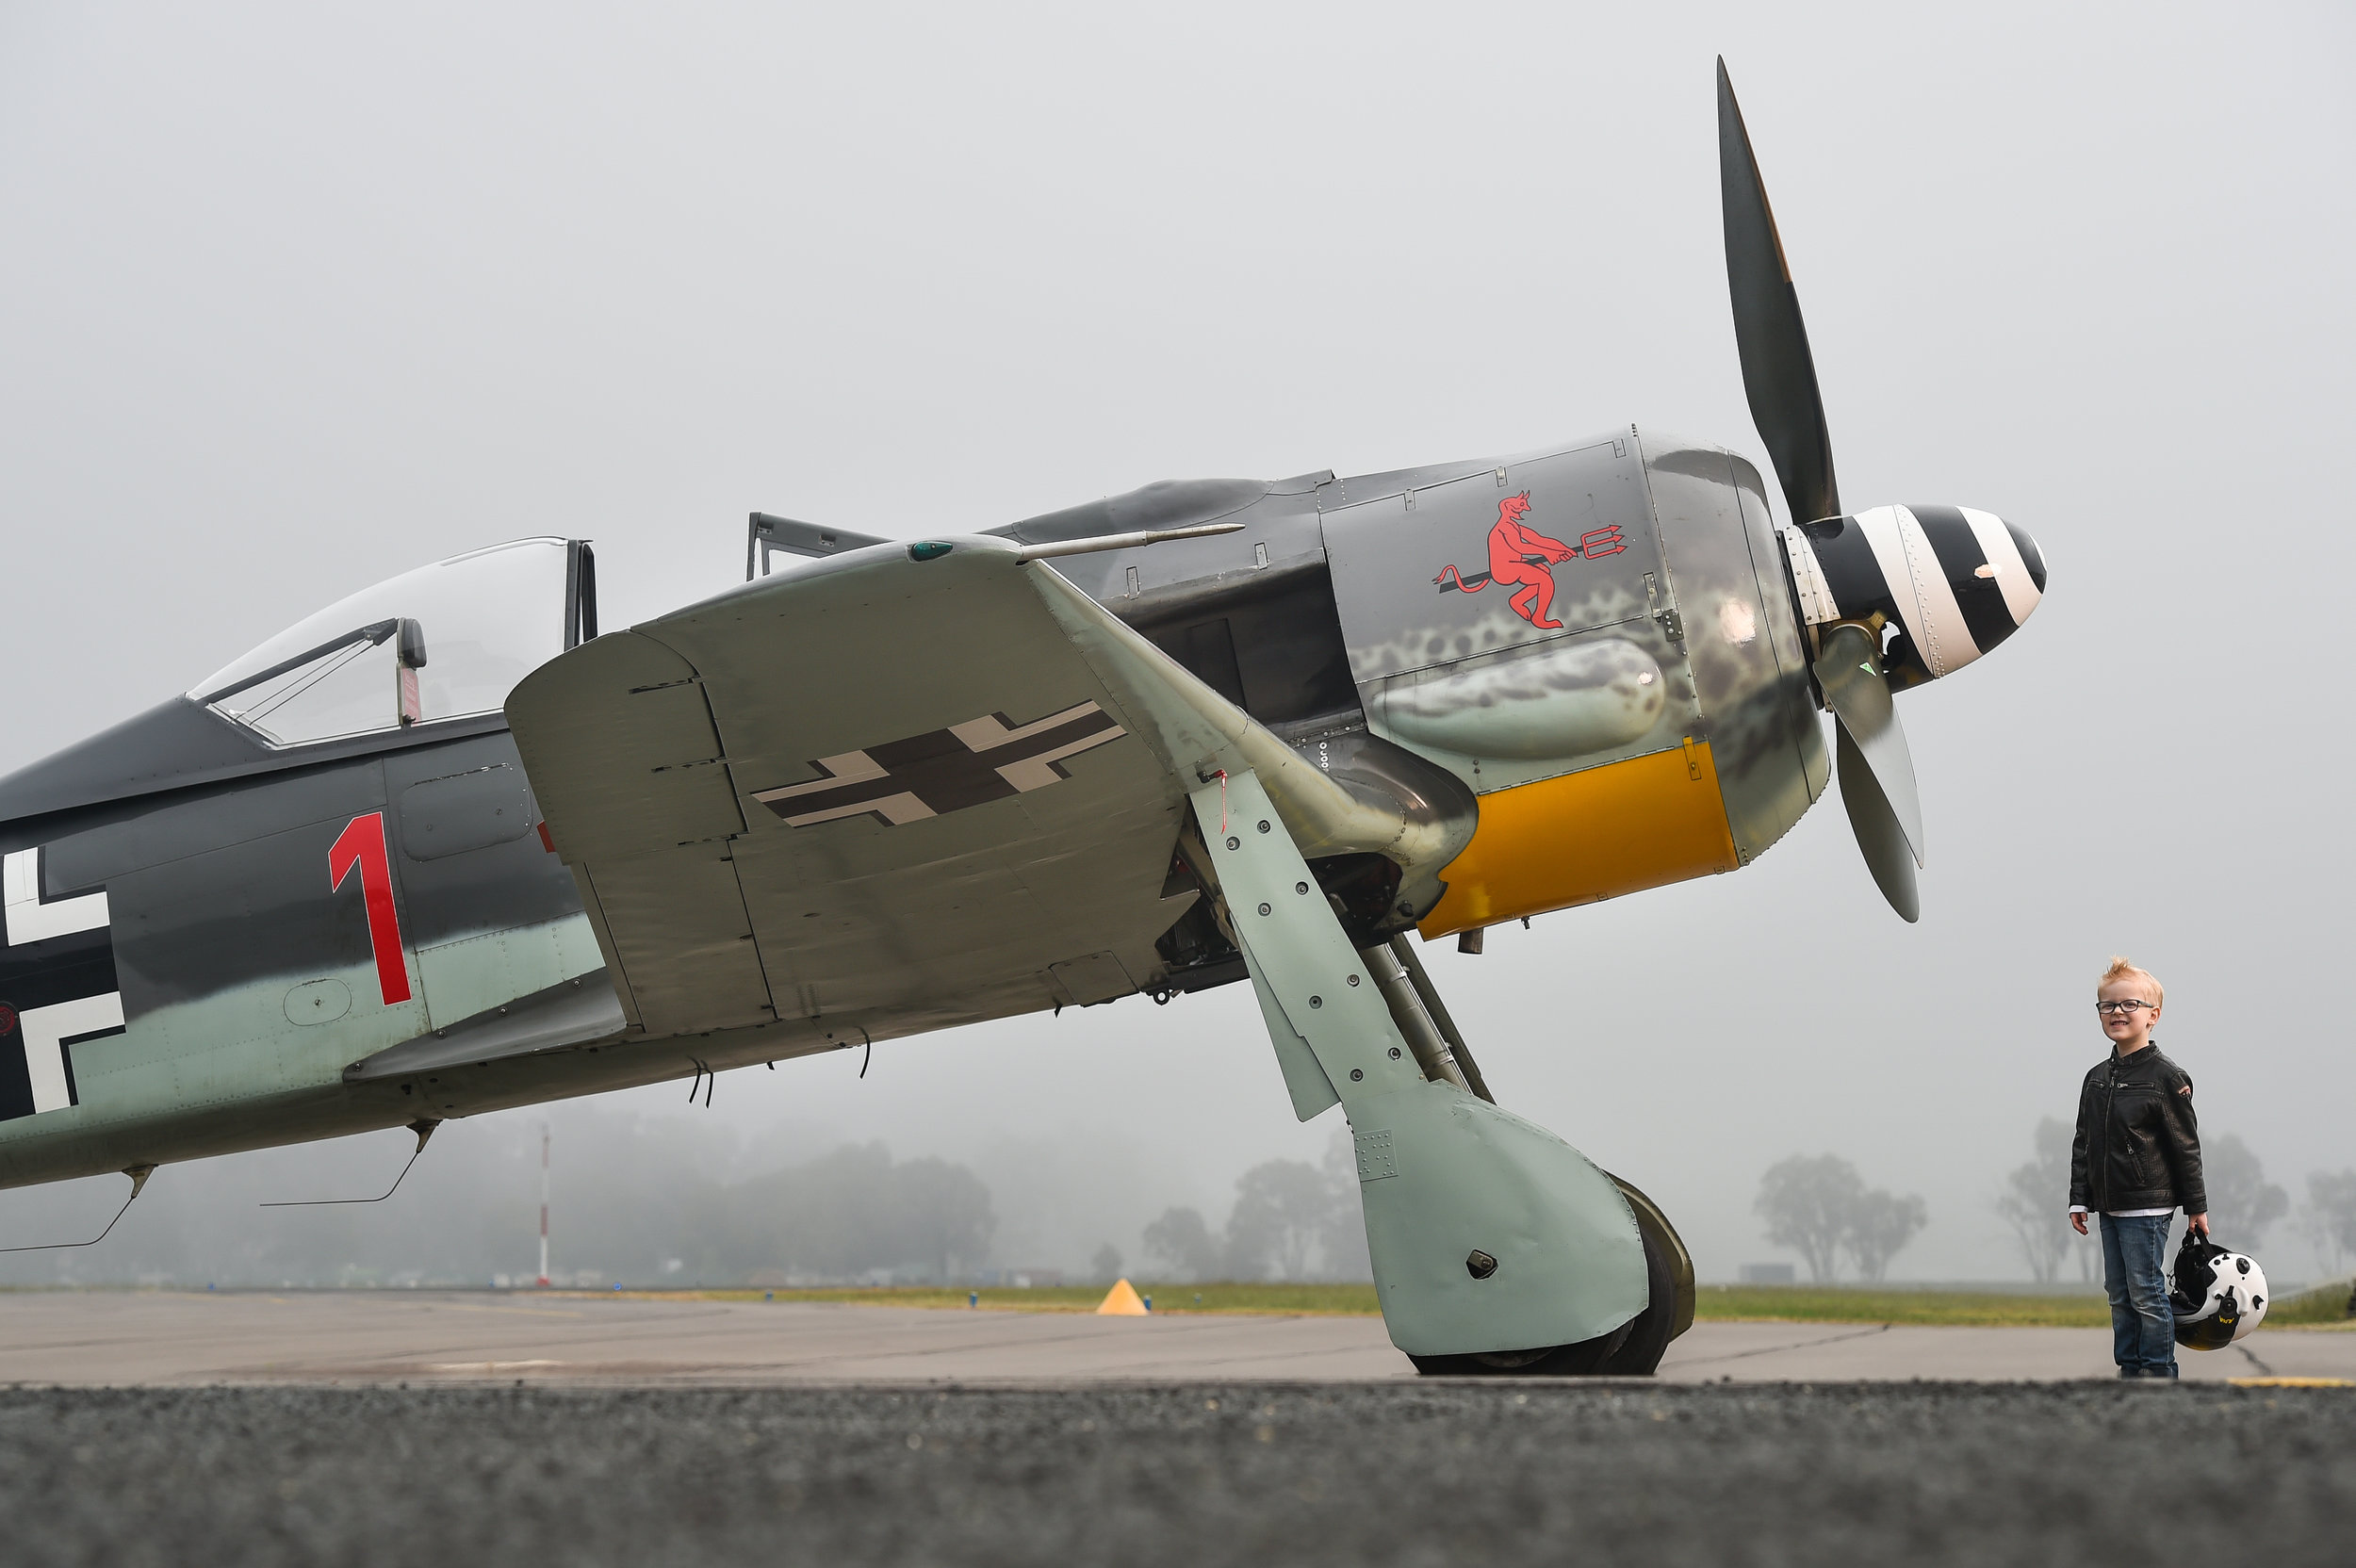 (Photo Mark Jesser/Fairfax Media) Albury Airport, NSW, Australia. One of the world's rarest German warplanes, the Focke-Wulf 190, flown in WWII will be one of the star attractions at the Wings Over Illawarra 2016 Airshow in Wollongong on May 6-7. Owned by Raptor Aviation. PICTURED: James Lane, 5 of Thurgoona (Albury), NSW gets a look at the plane before it takes off to Wollongong.